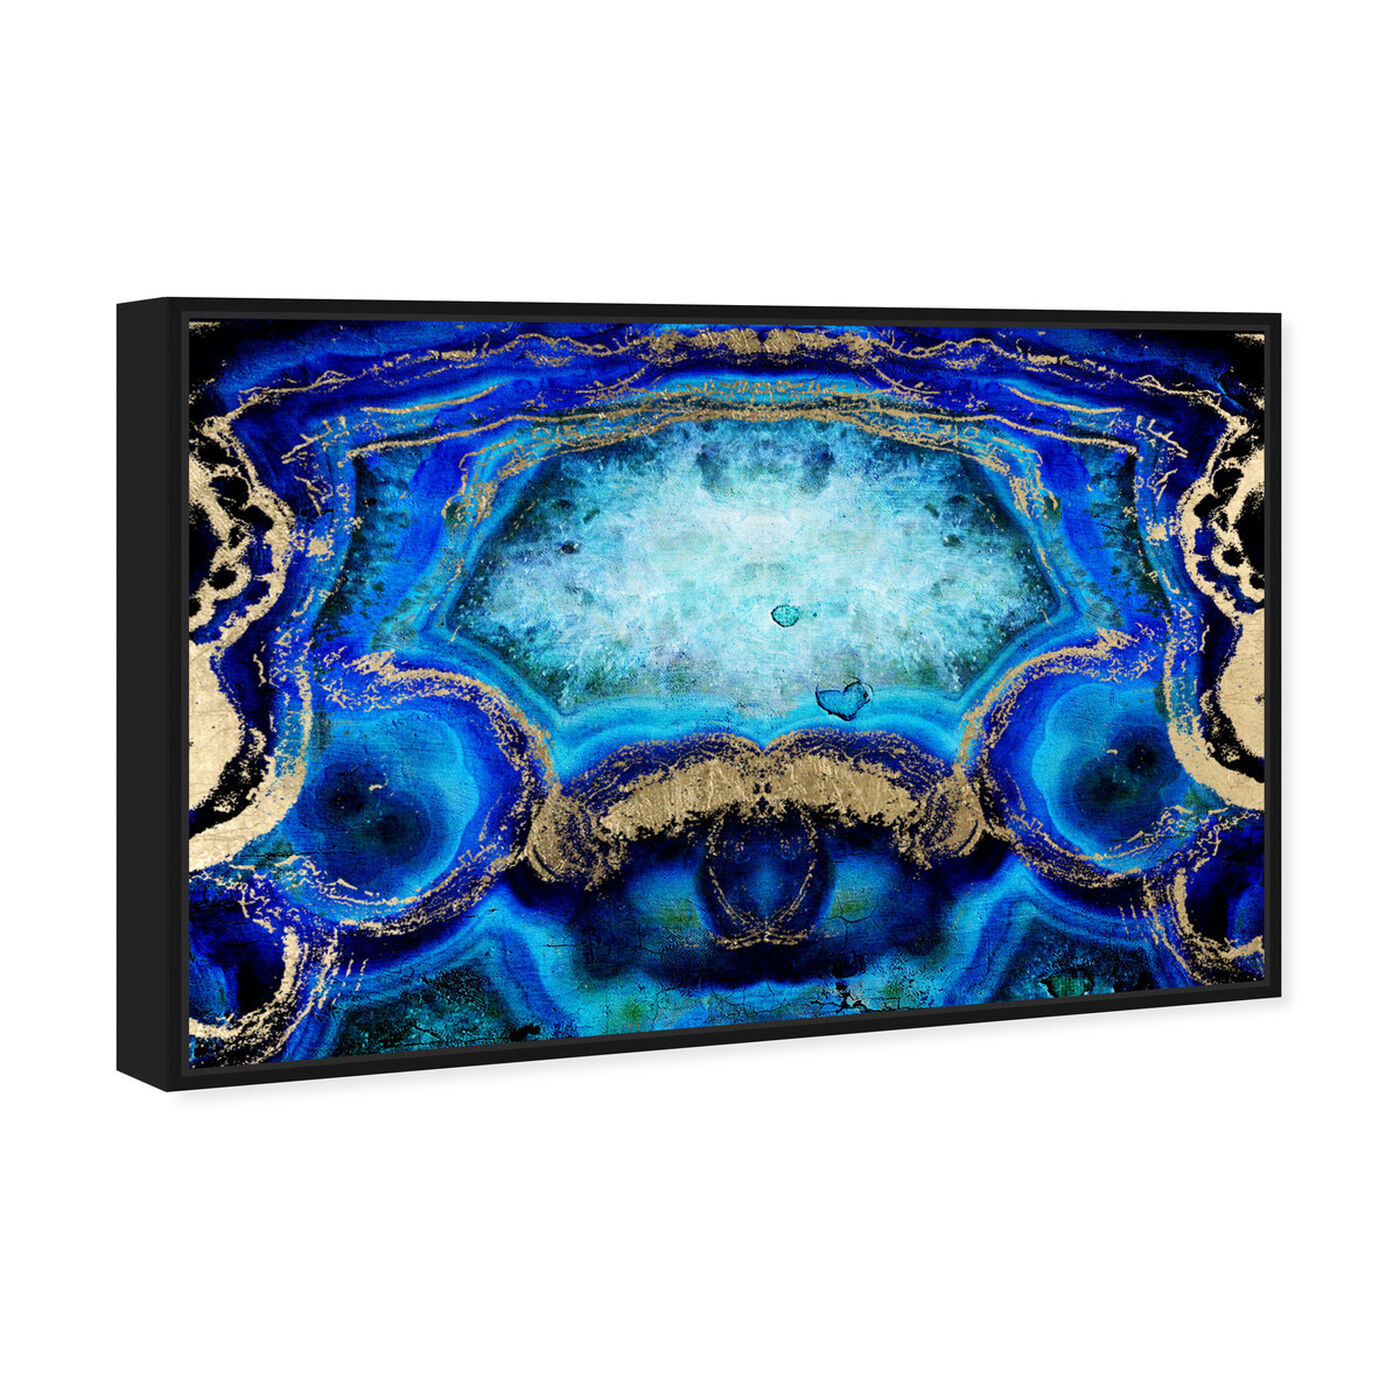 Angled view of Geode Bleu featuring abstract and crystals art.